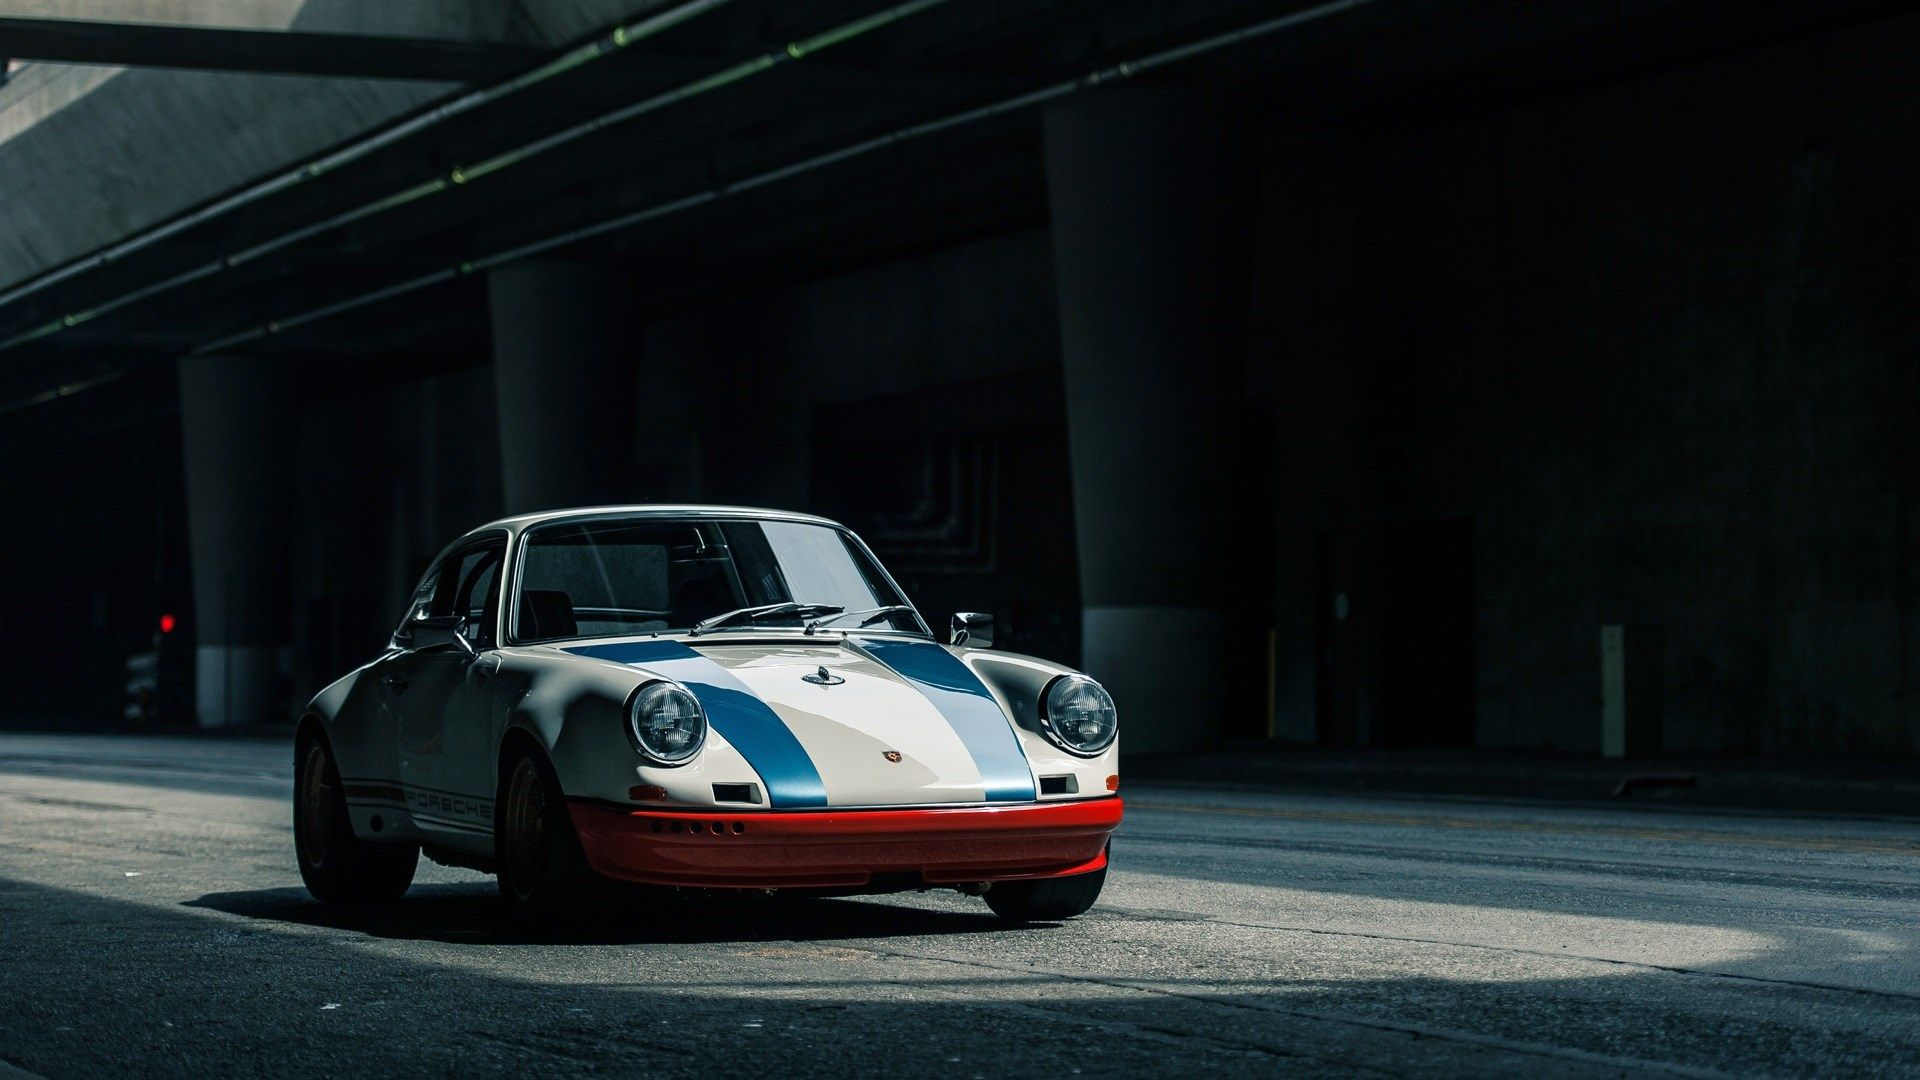 Porsche Turbo Desktop Wallpapers This Wallpaper